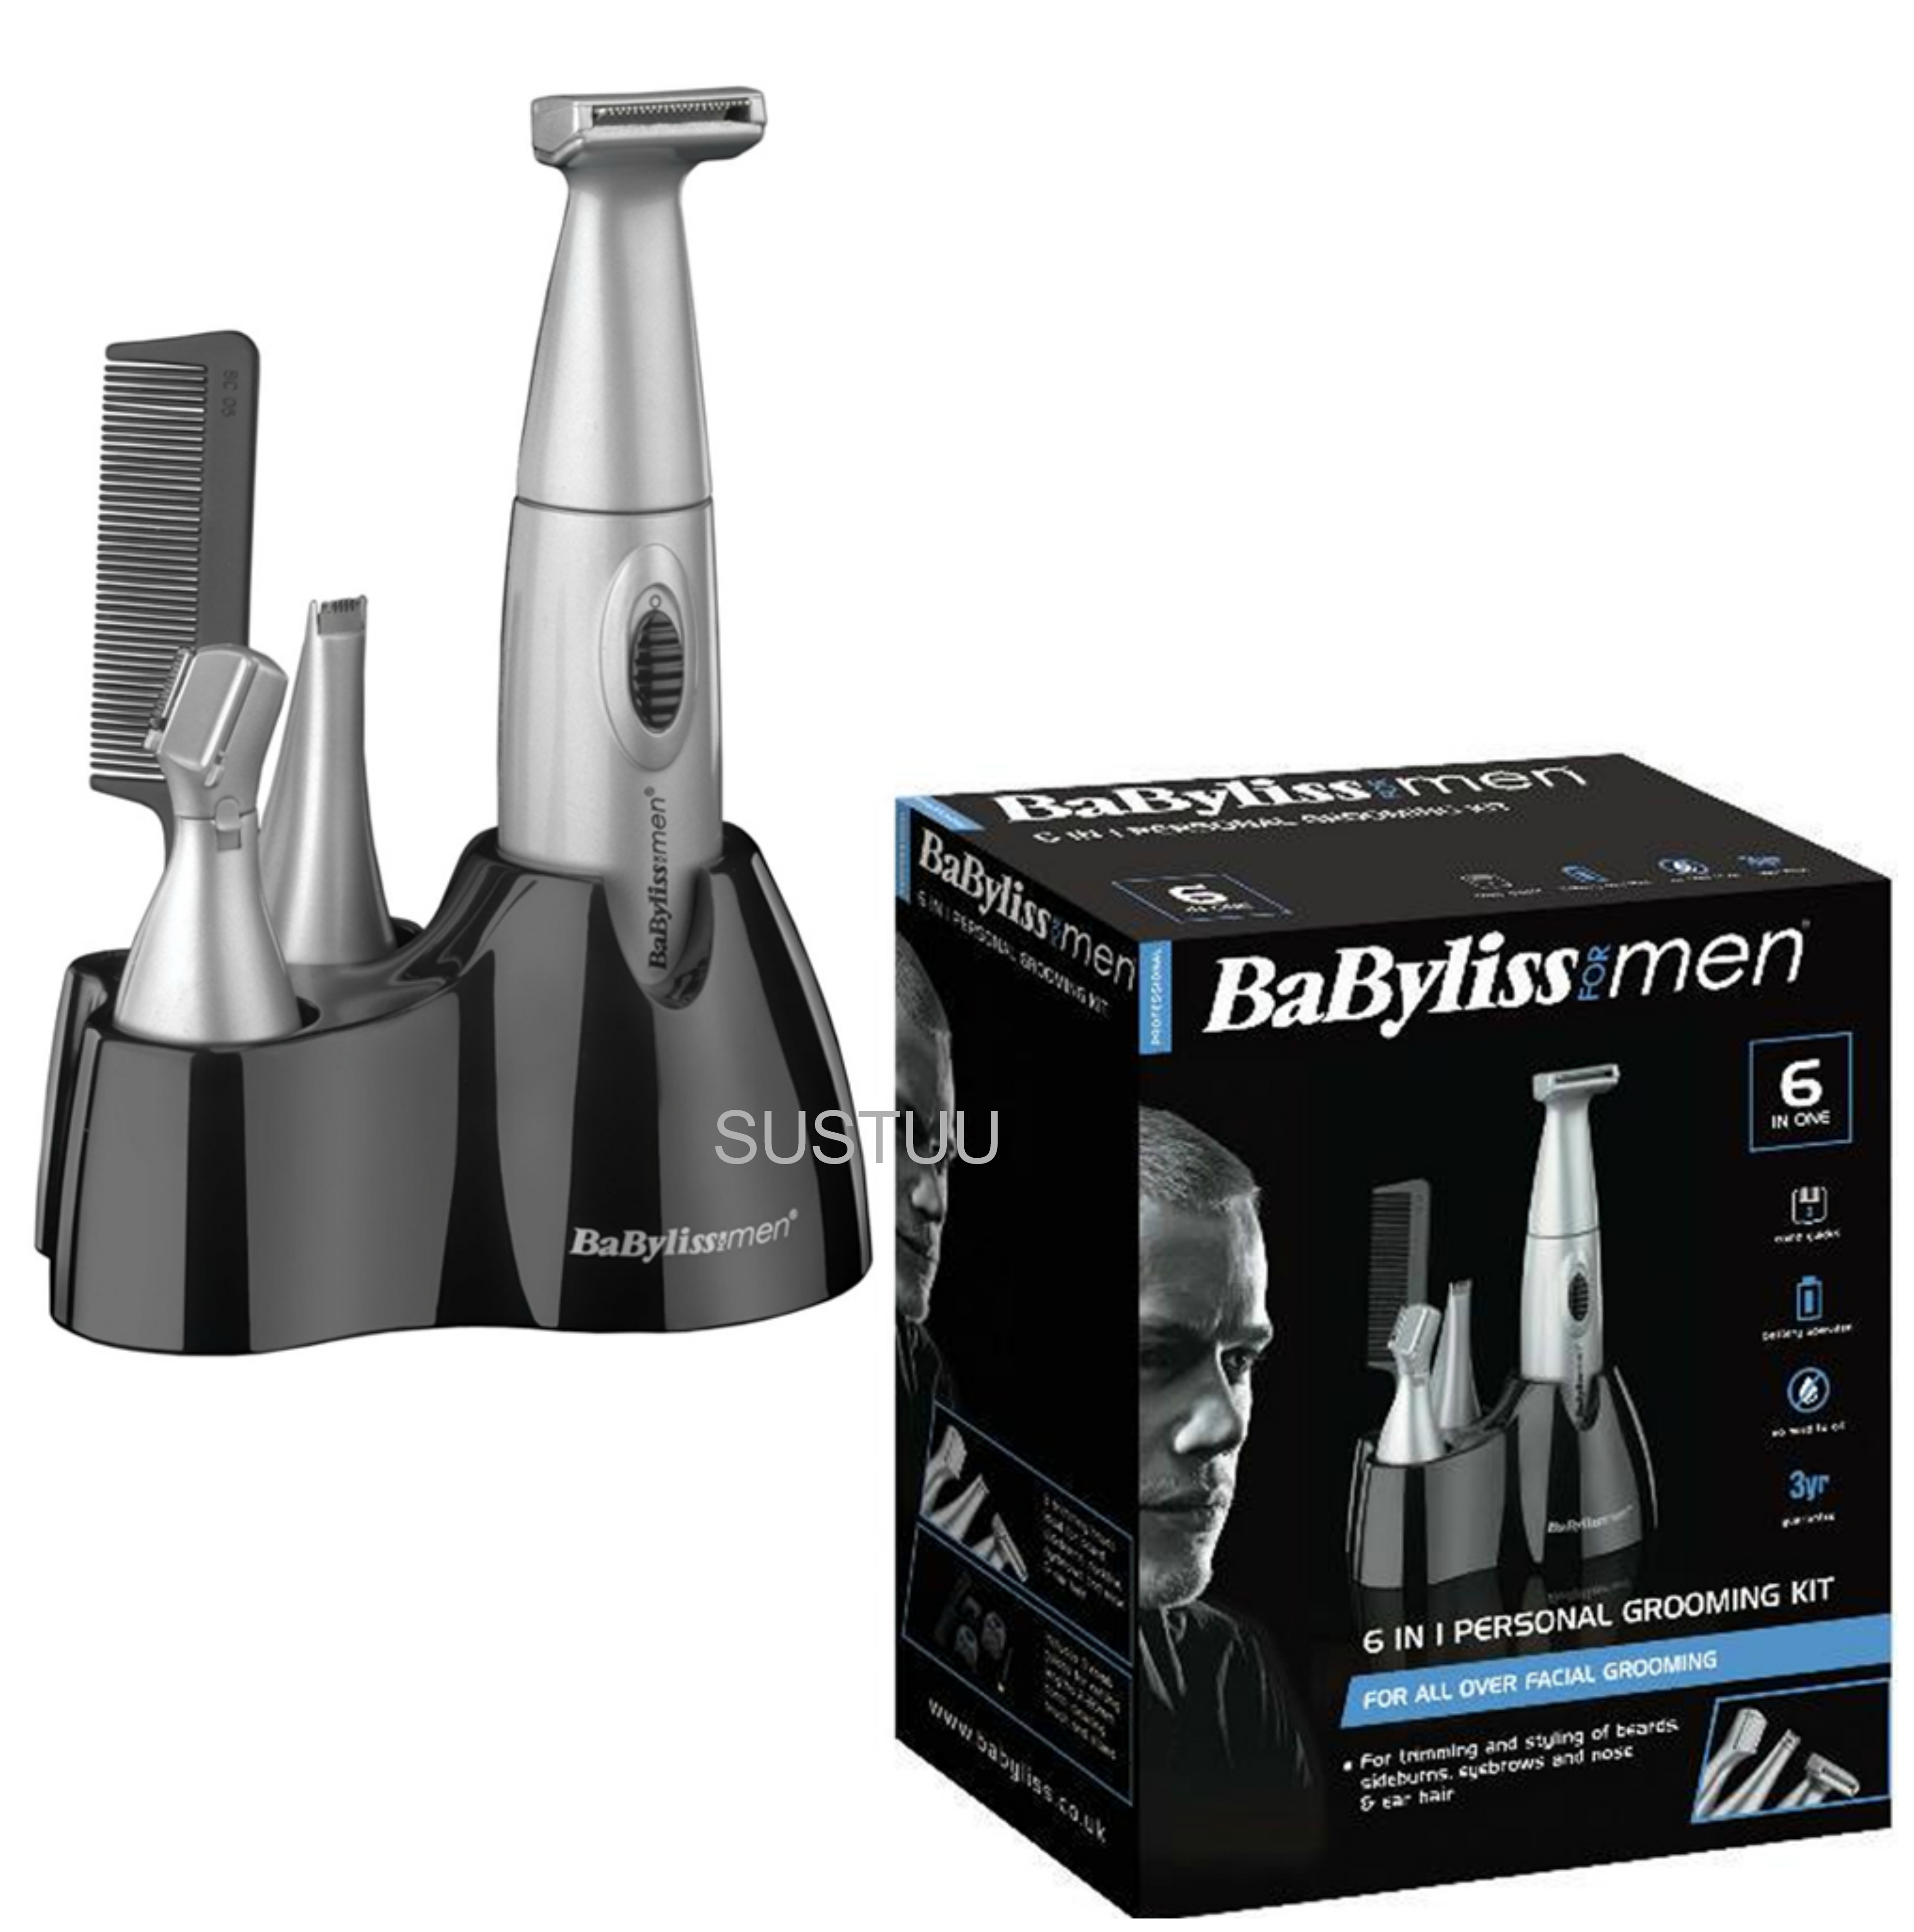 Babyliss New 7040CU Men's Nose/Ear/Eyebrow Trimmer Battery Operated 6 In 1 Kit 